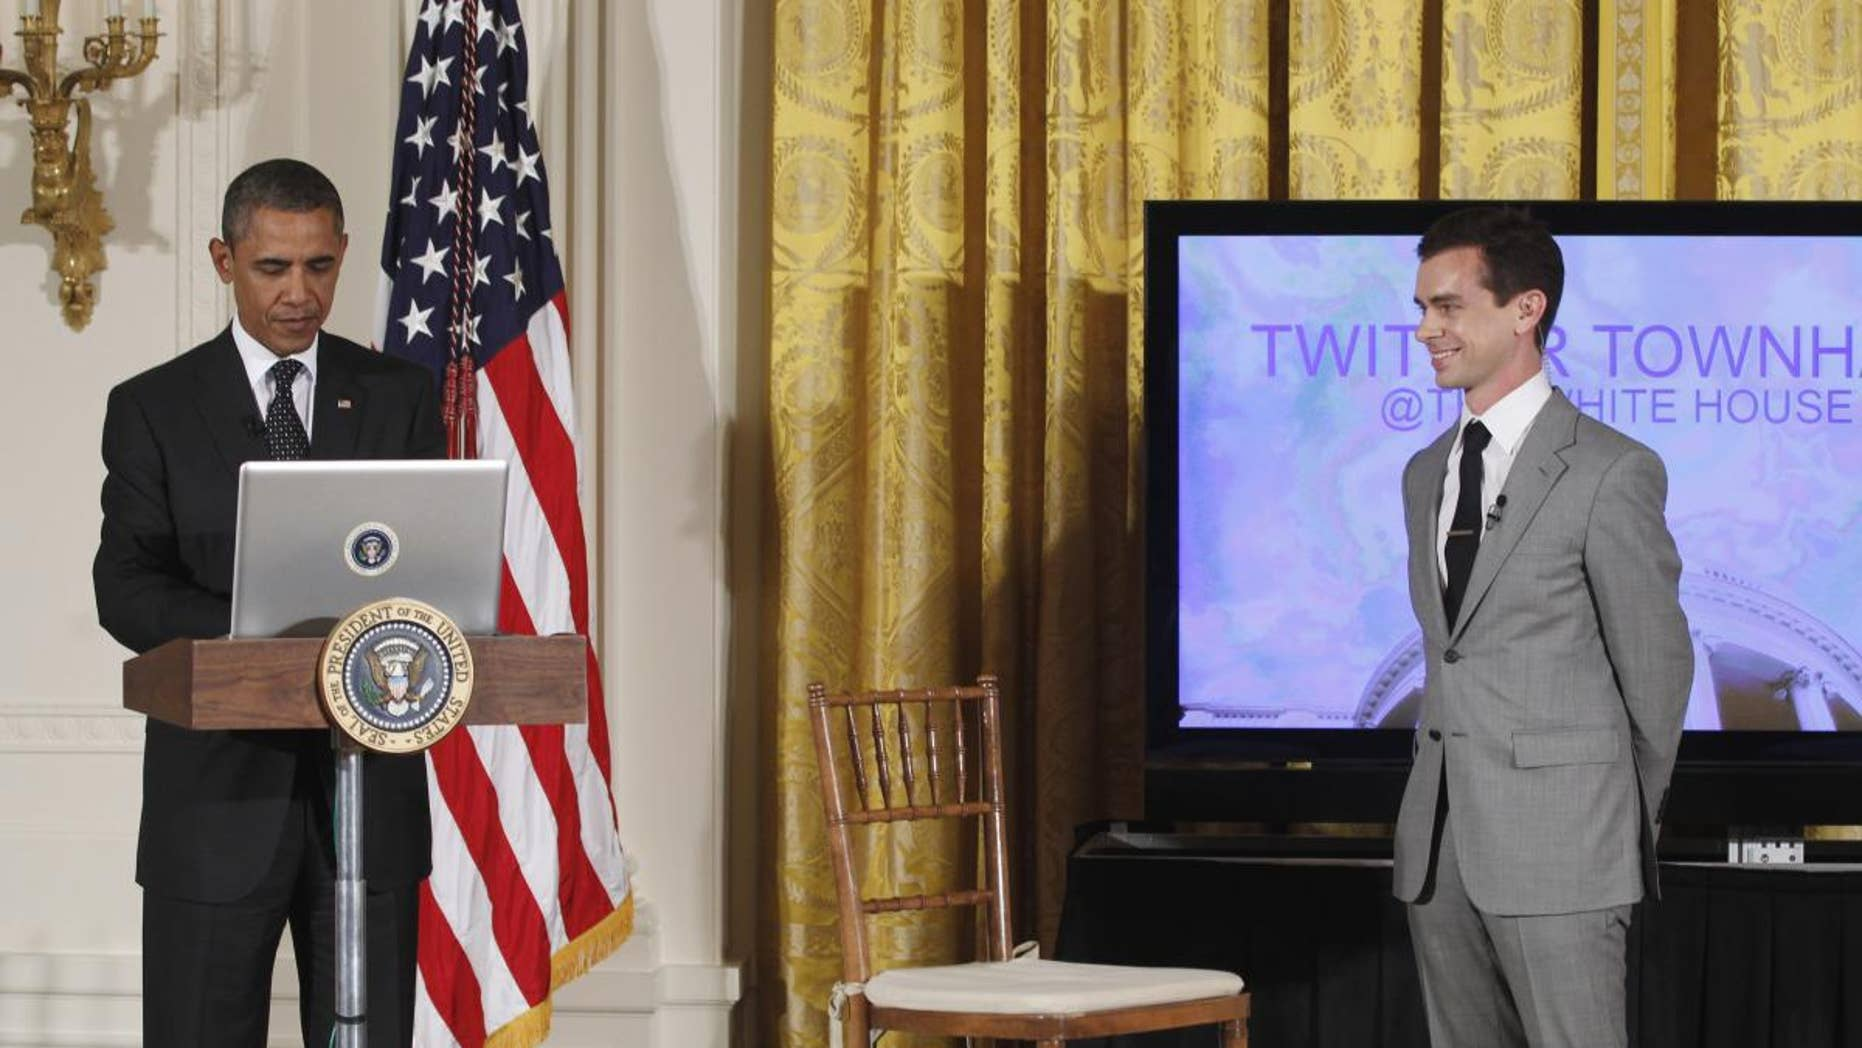 AP image/Twitter town hall